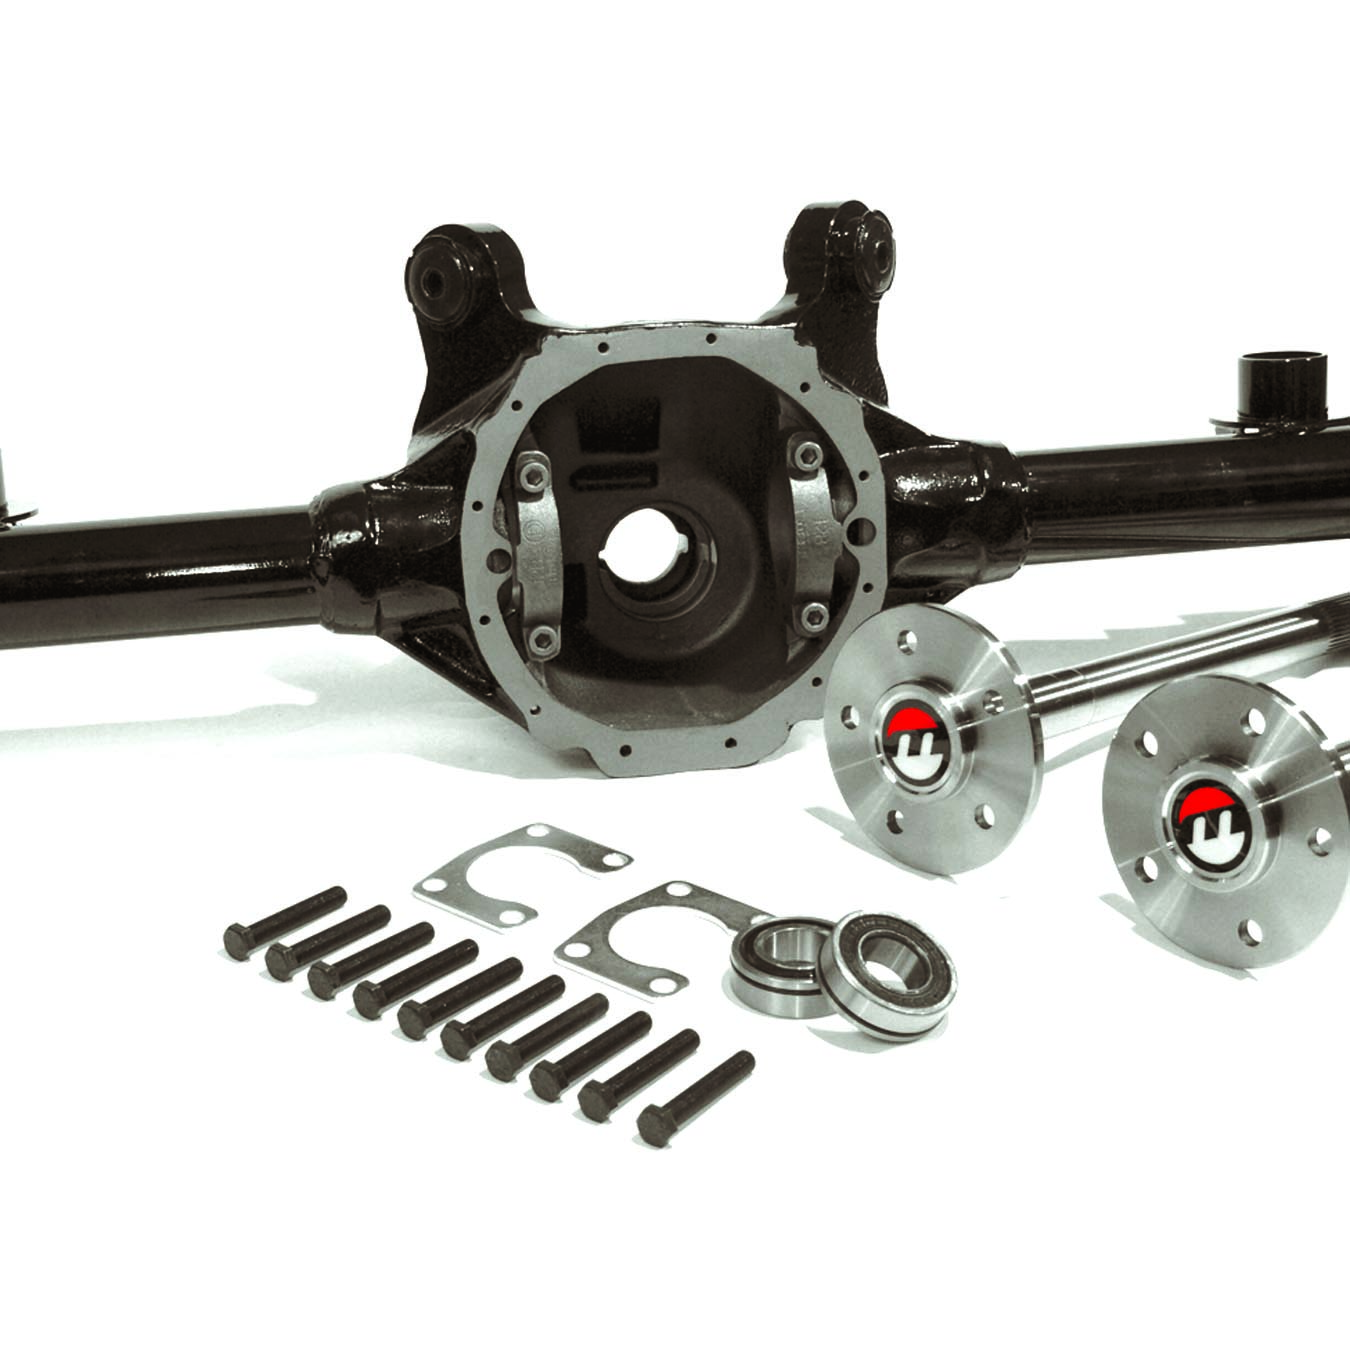 12 Bolt Built to Order Housing & Axle Package